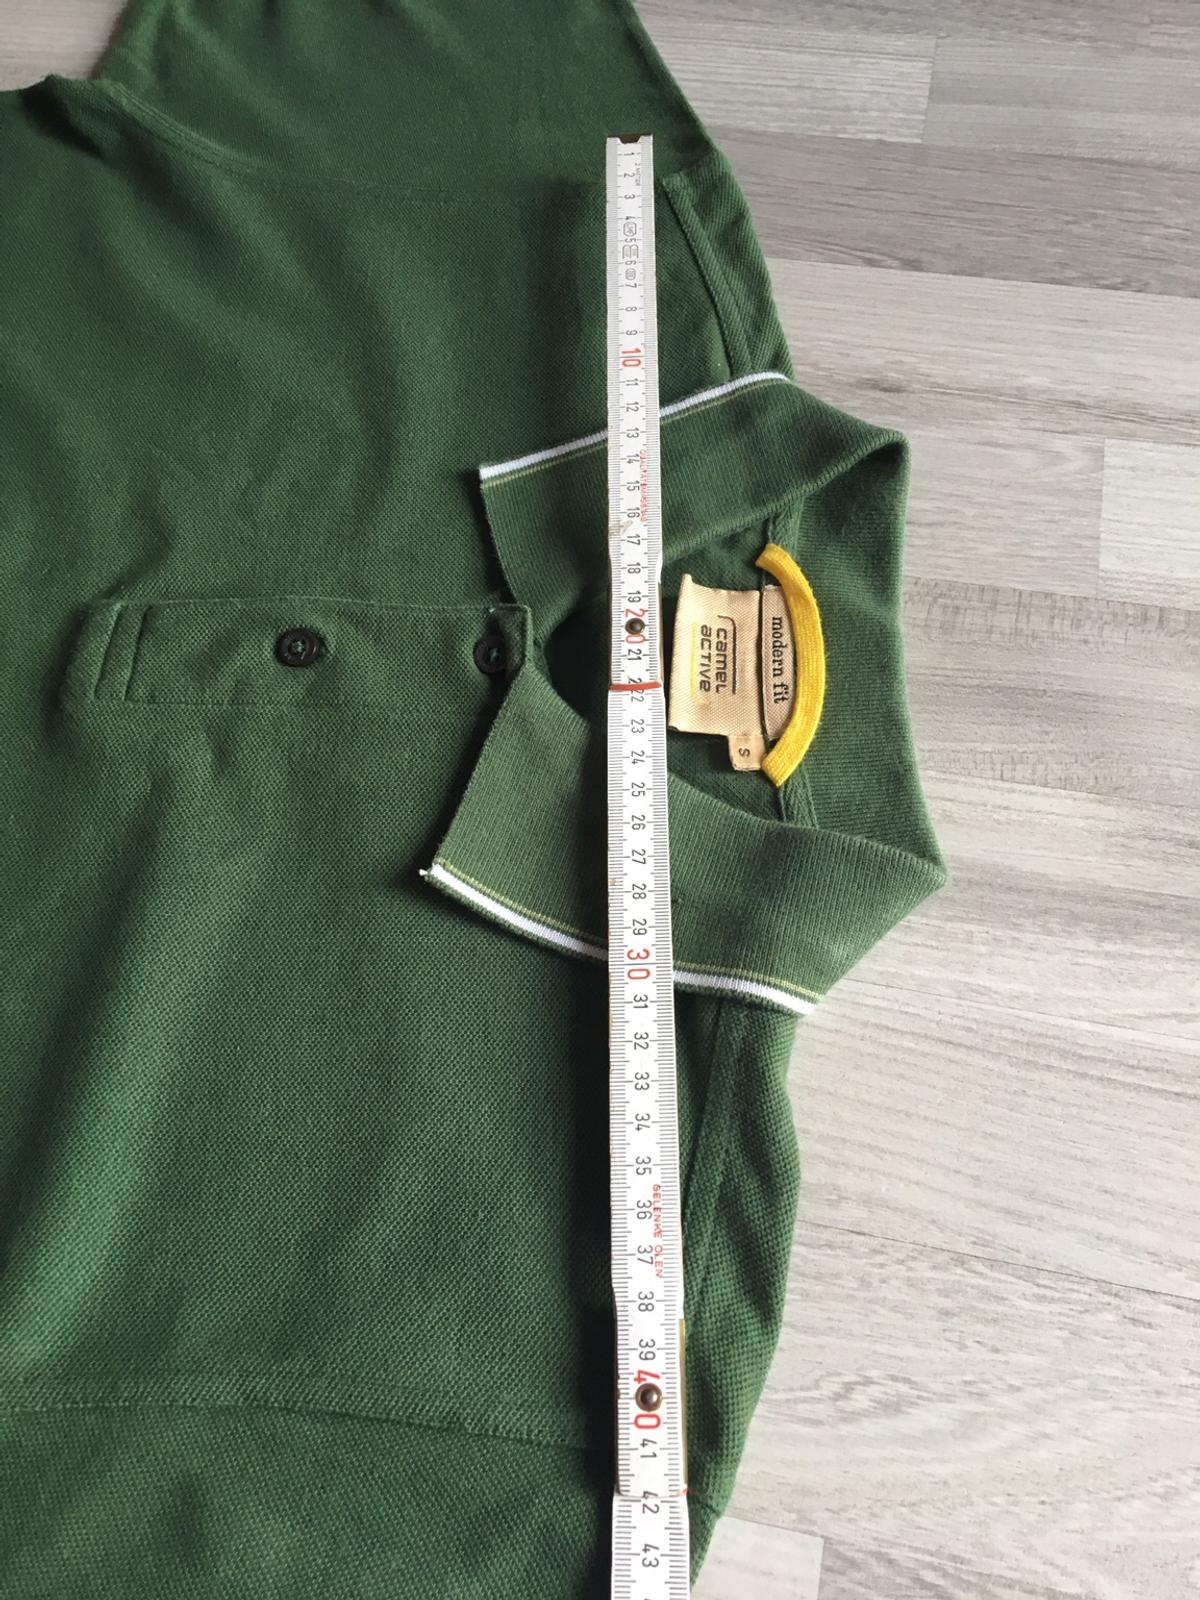 Polo Shirt von camel active in S modern fit in 46537